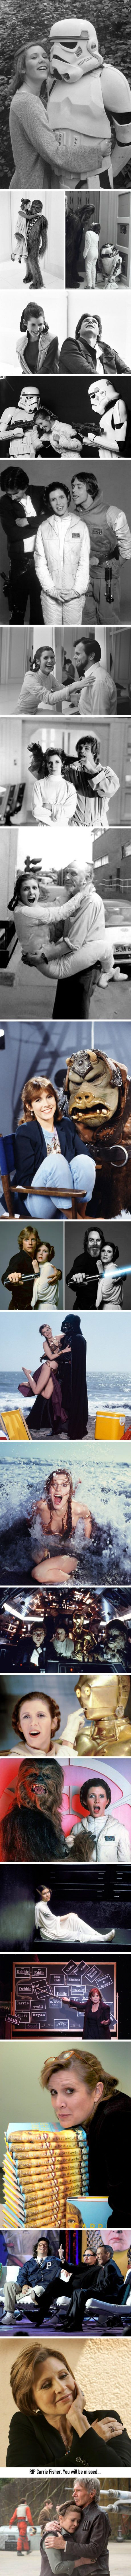 21 Photos Of Carrie Fisher That Will Make You Miss Her Even More